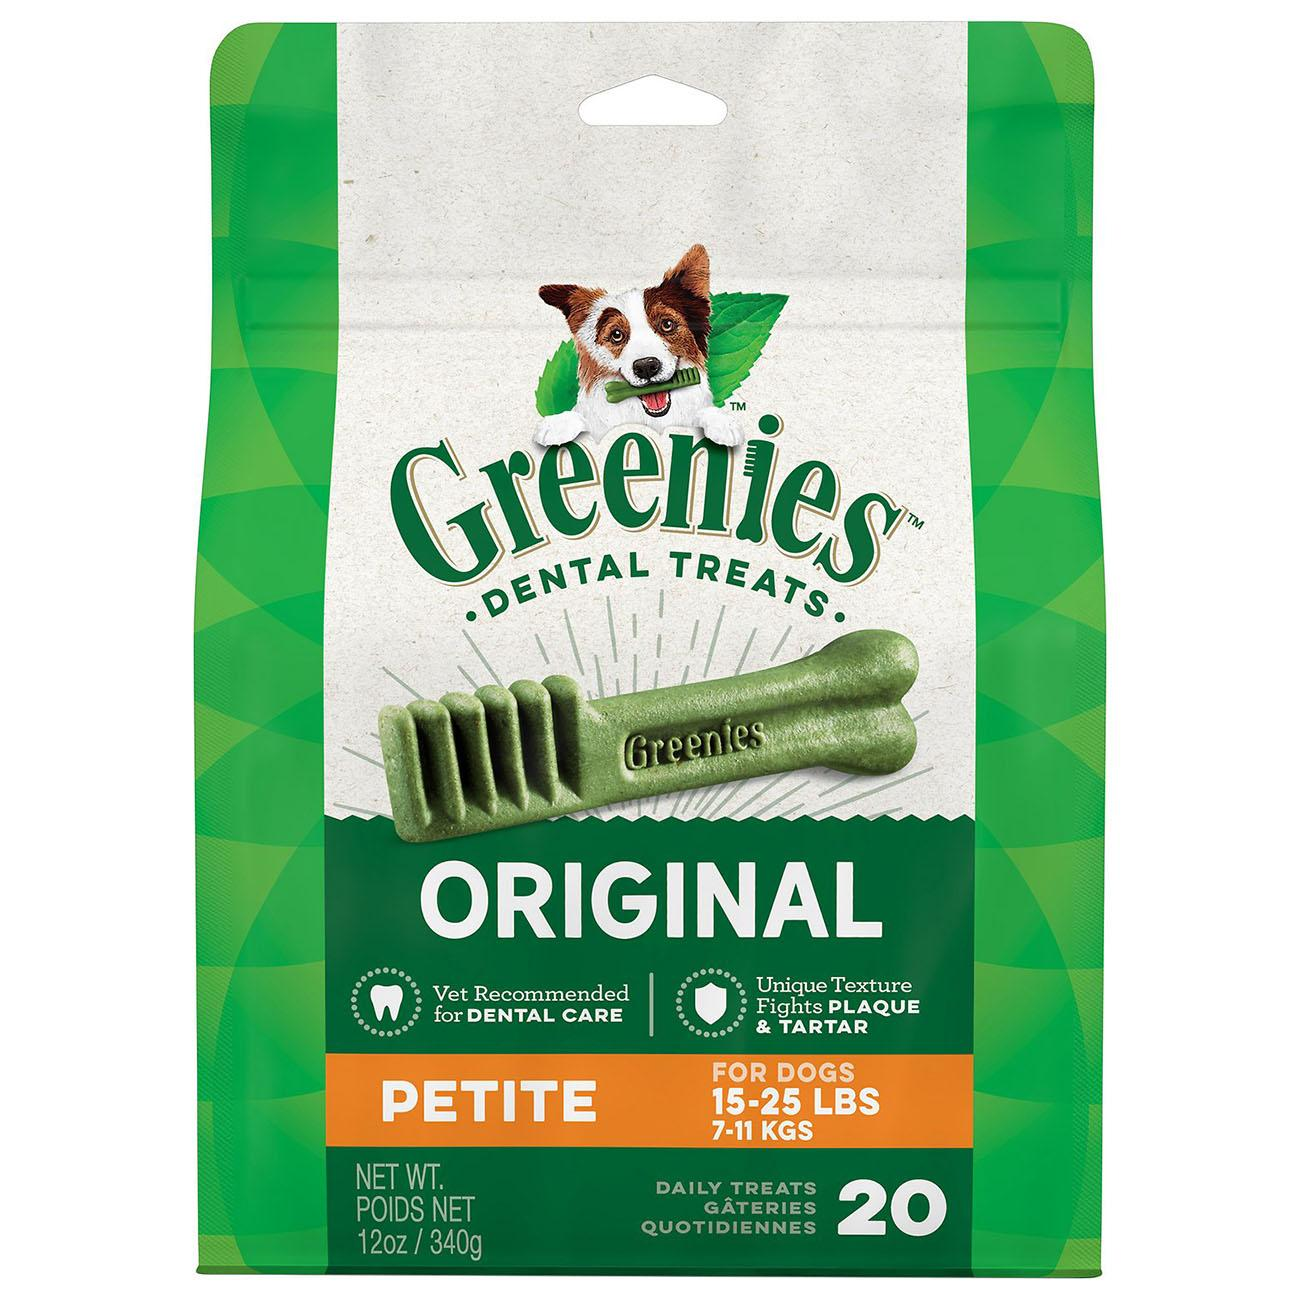 Greenies Original Dental Dog Chews - Petite Dog Size